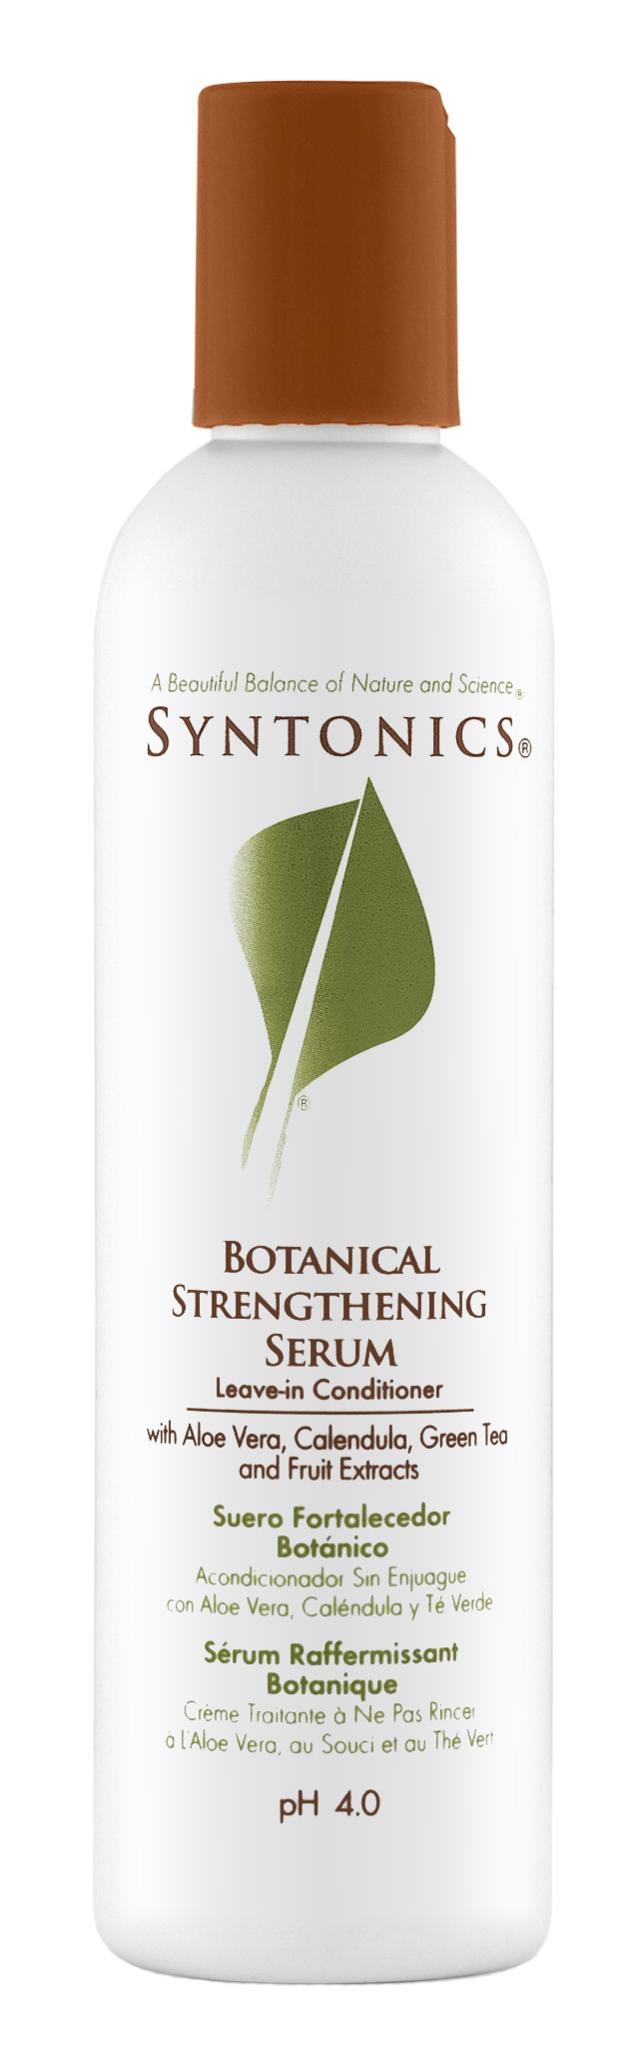 Botanical Strengthening Serum Leave-In Conditioner